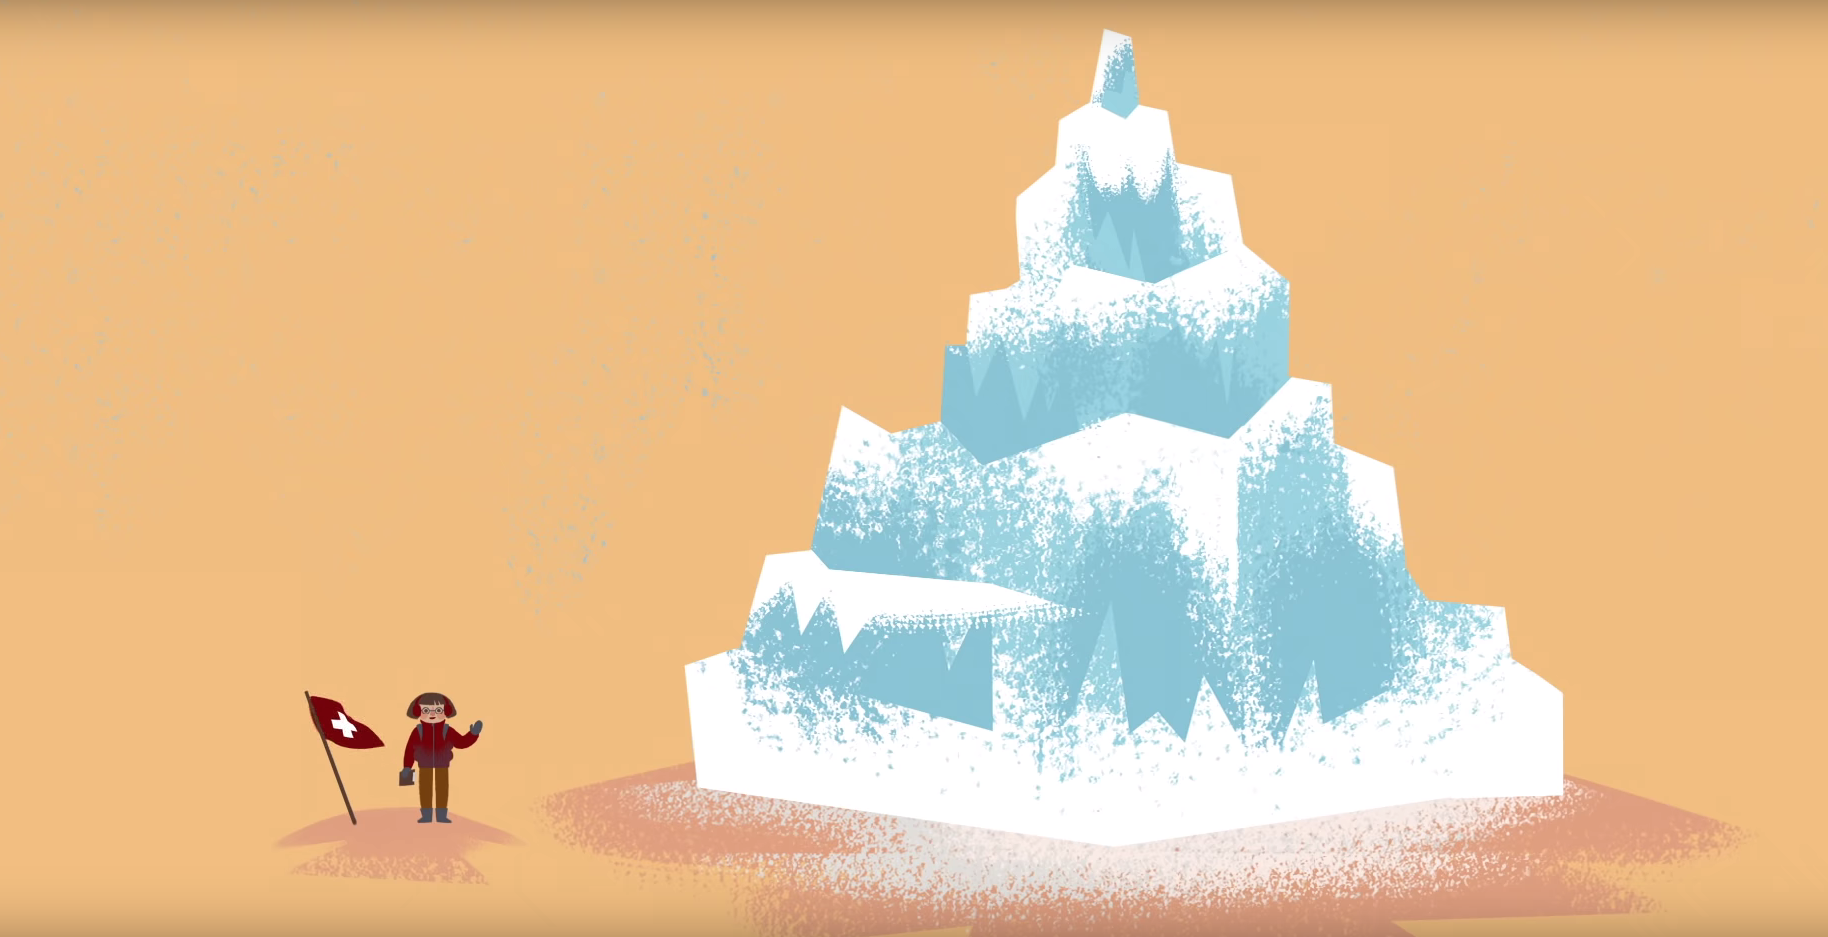 How To Build Your Own Glacier